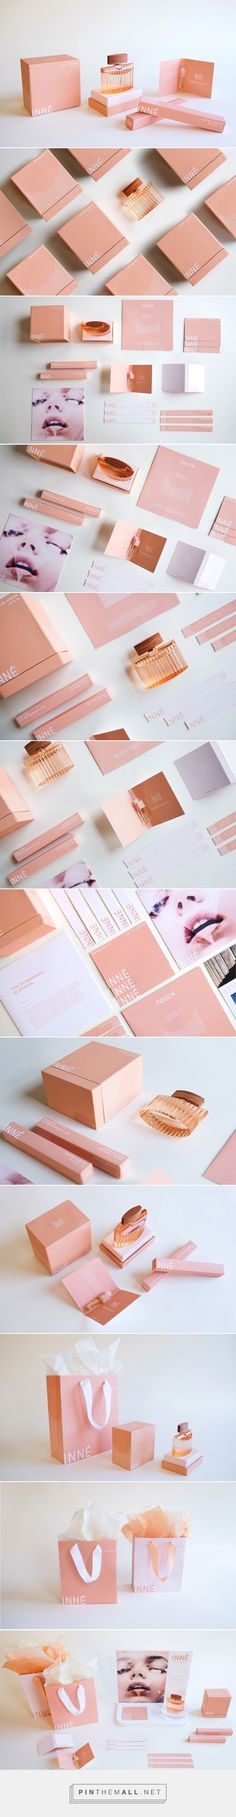 INNÉ Feminine Perfume Branding and Packaging by Thitipol Chaimattayompol